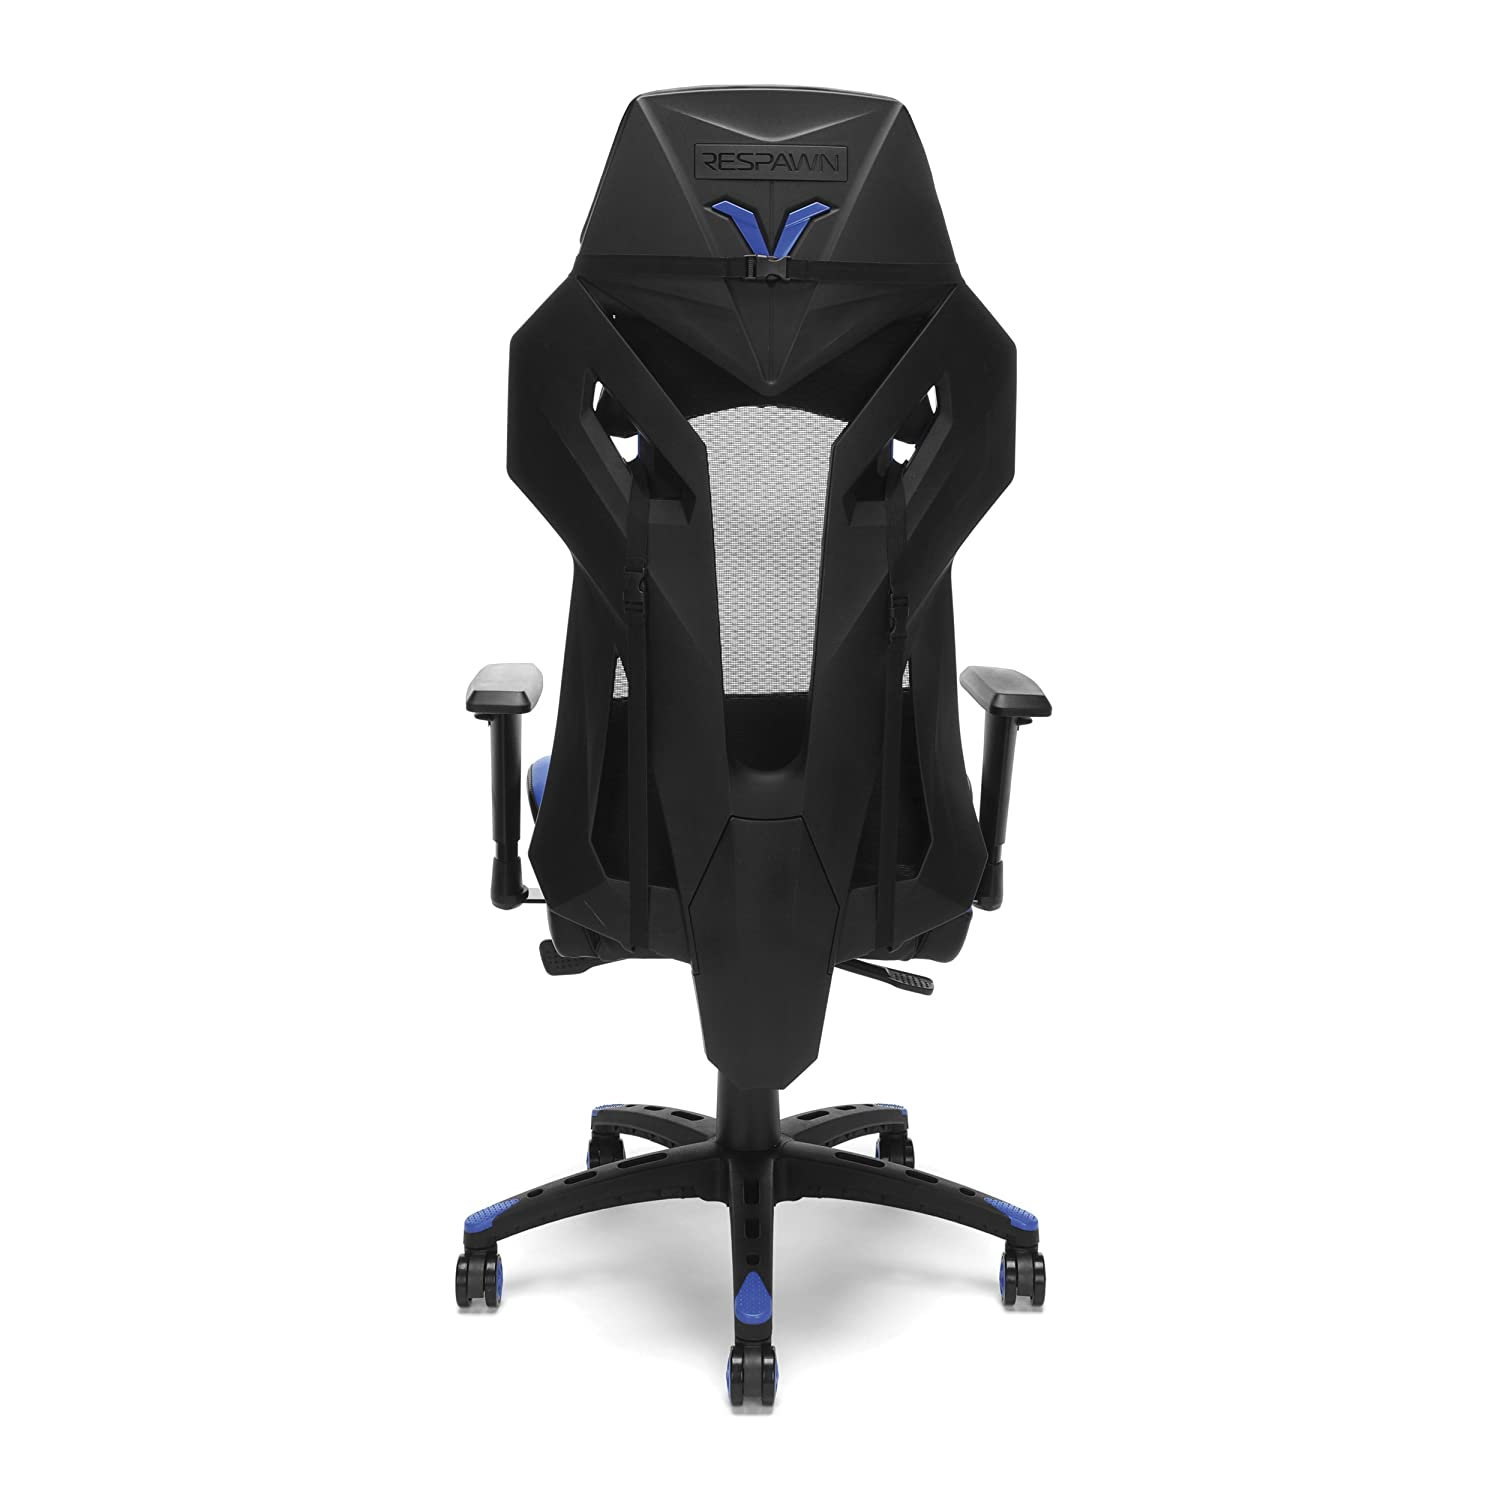 Excellent Respawn 205 Racing Style Gaming Chair In Blue Rsp 205 Blu Machost Co Dining Chair Design Ideas Machostcouk